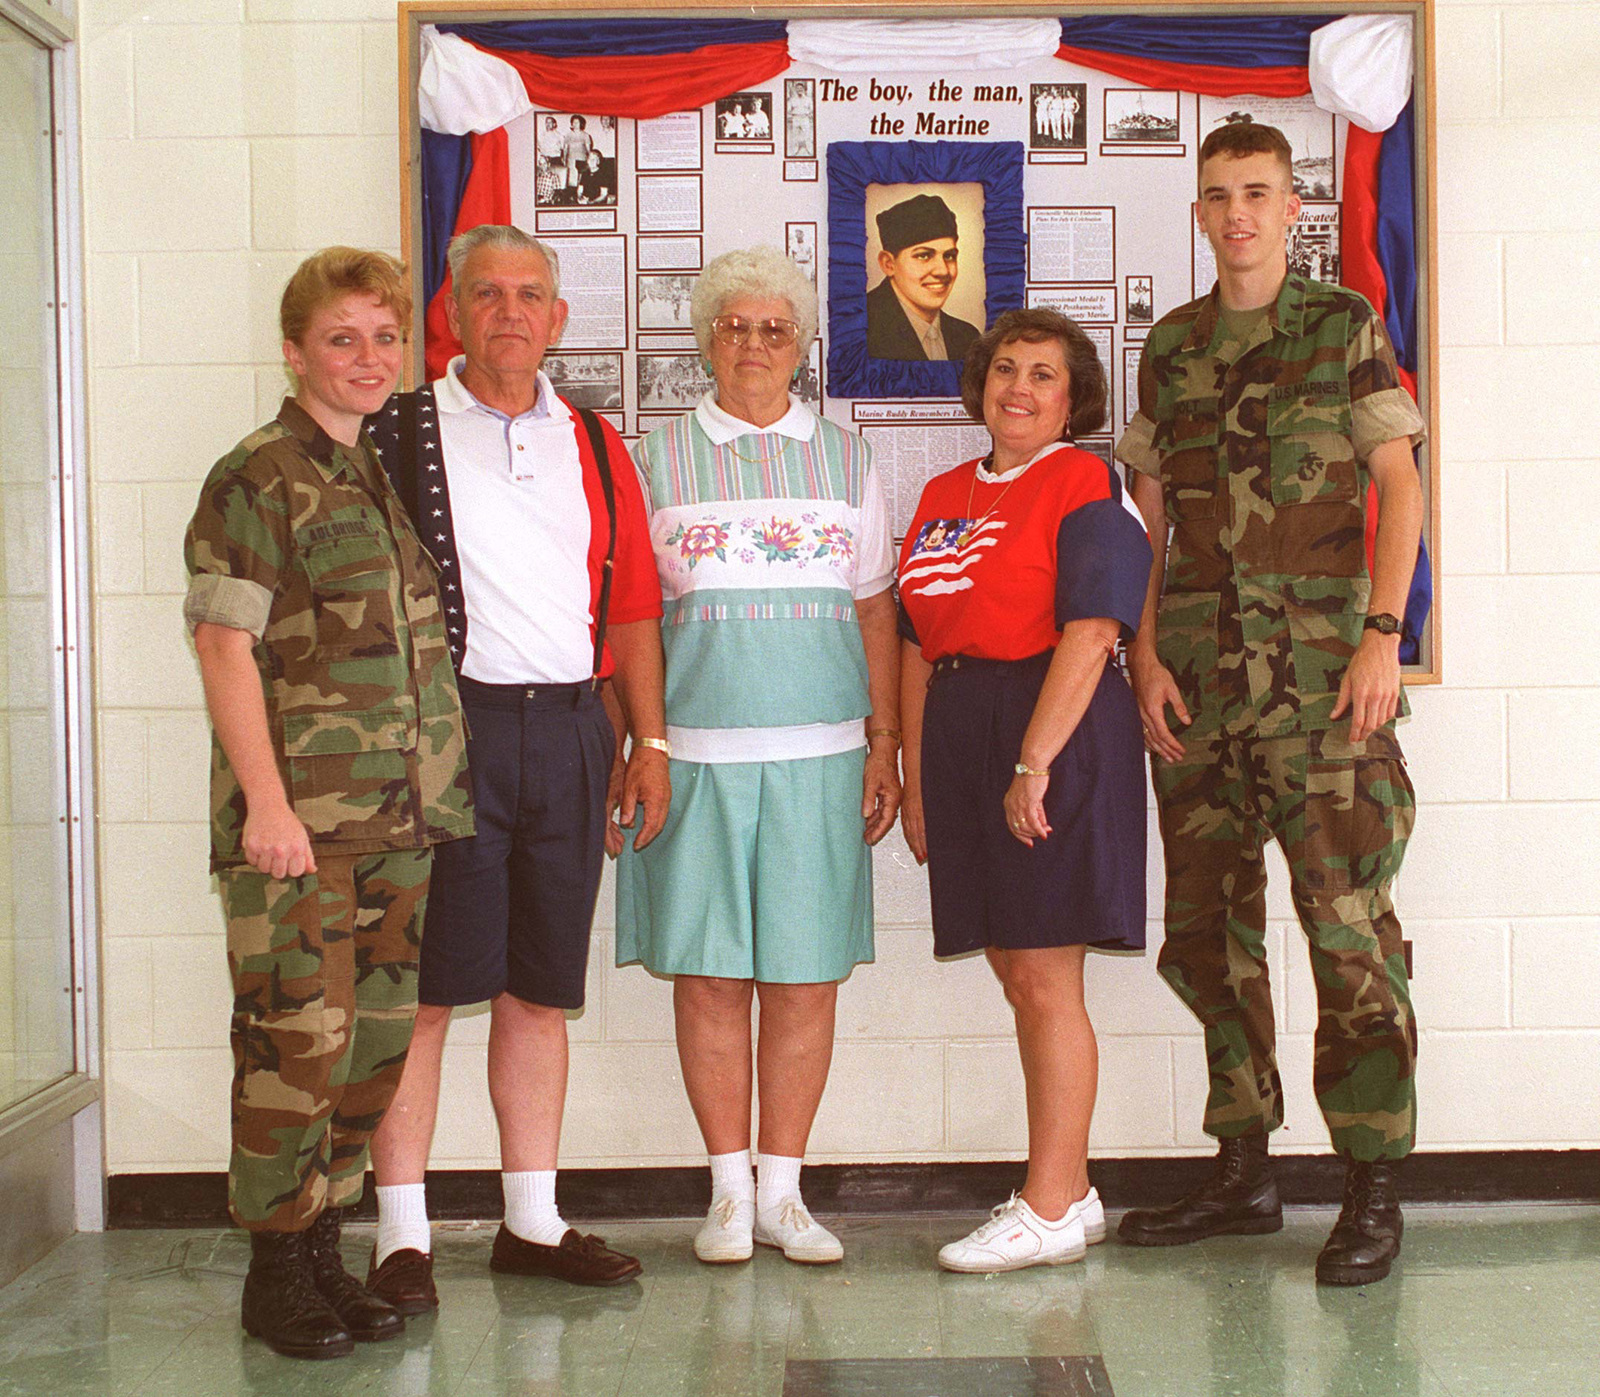 SGT Zinda E. Auldridge, Mr. Charles F. Kinser, Mrs Hazel E. Kinser, Margaret M. Kinser, and LCPL Melvin F. Starcher, stand in front of the display board in Honor of the Medal Of Honor Recipient, SGT Elbert R. Kinser